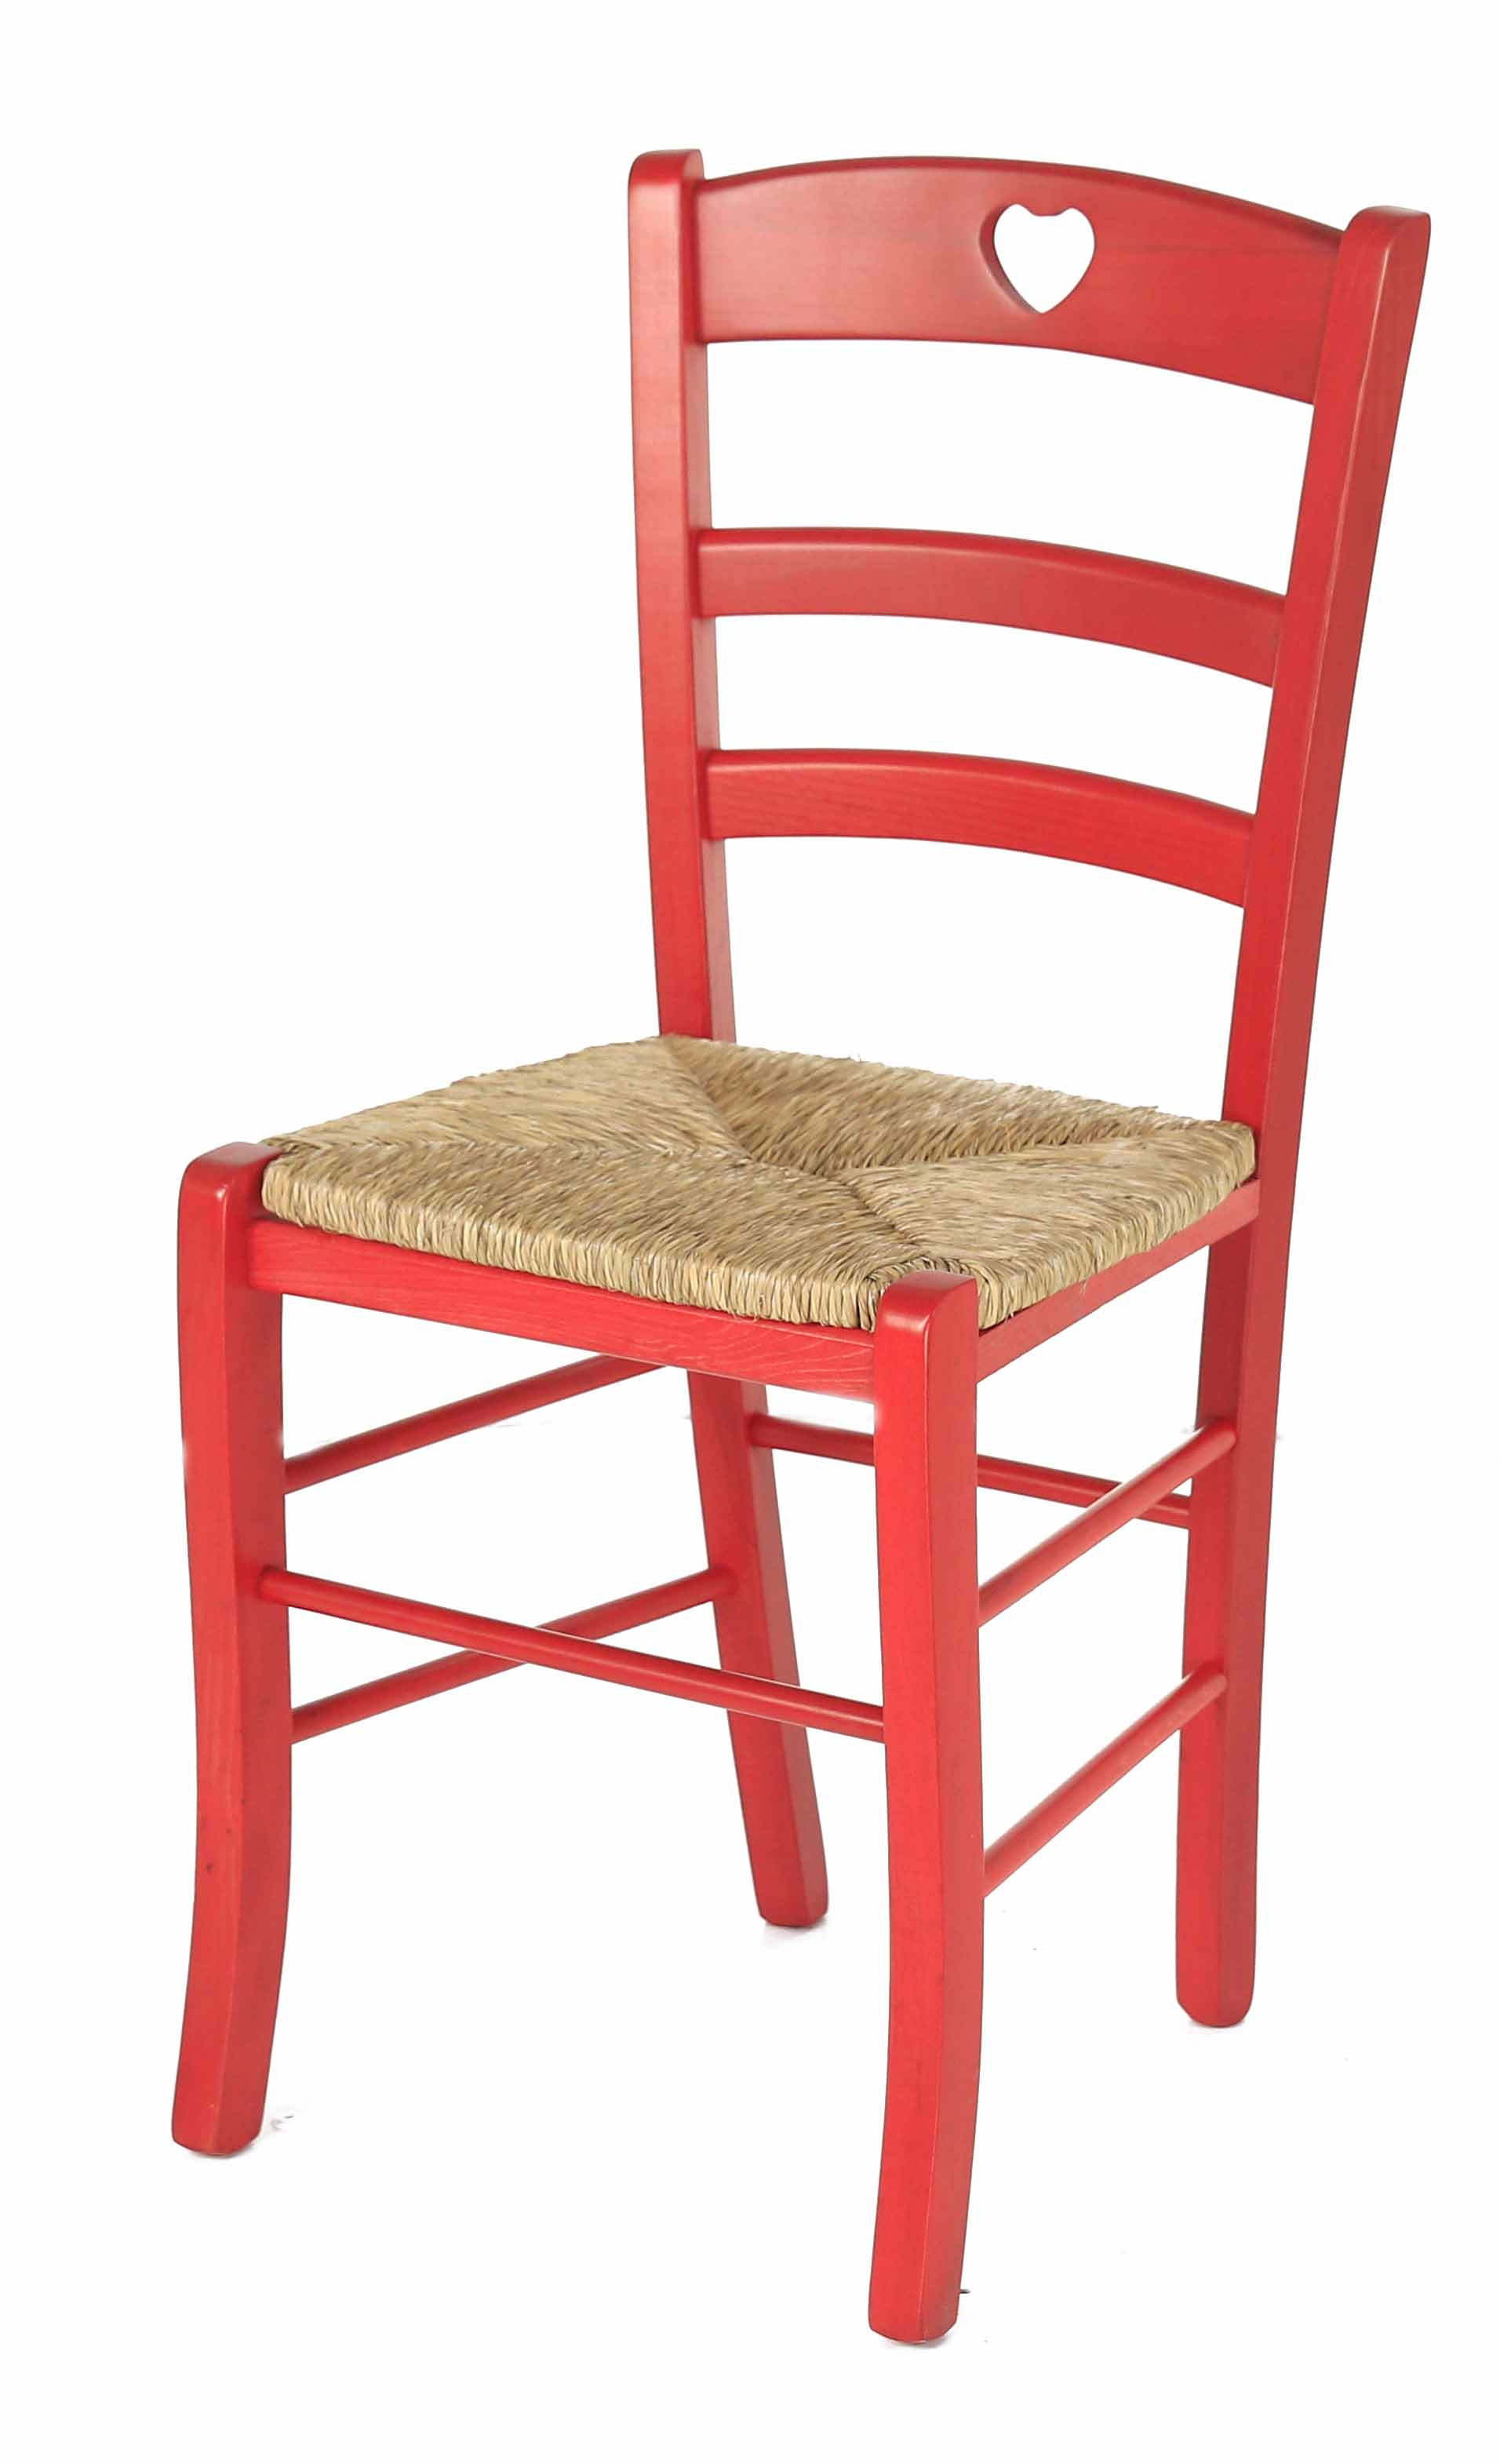 Coin repas chaises chaise h tre massif rouge coeur assise paille montagny - Chaise paille blanche ...